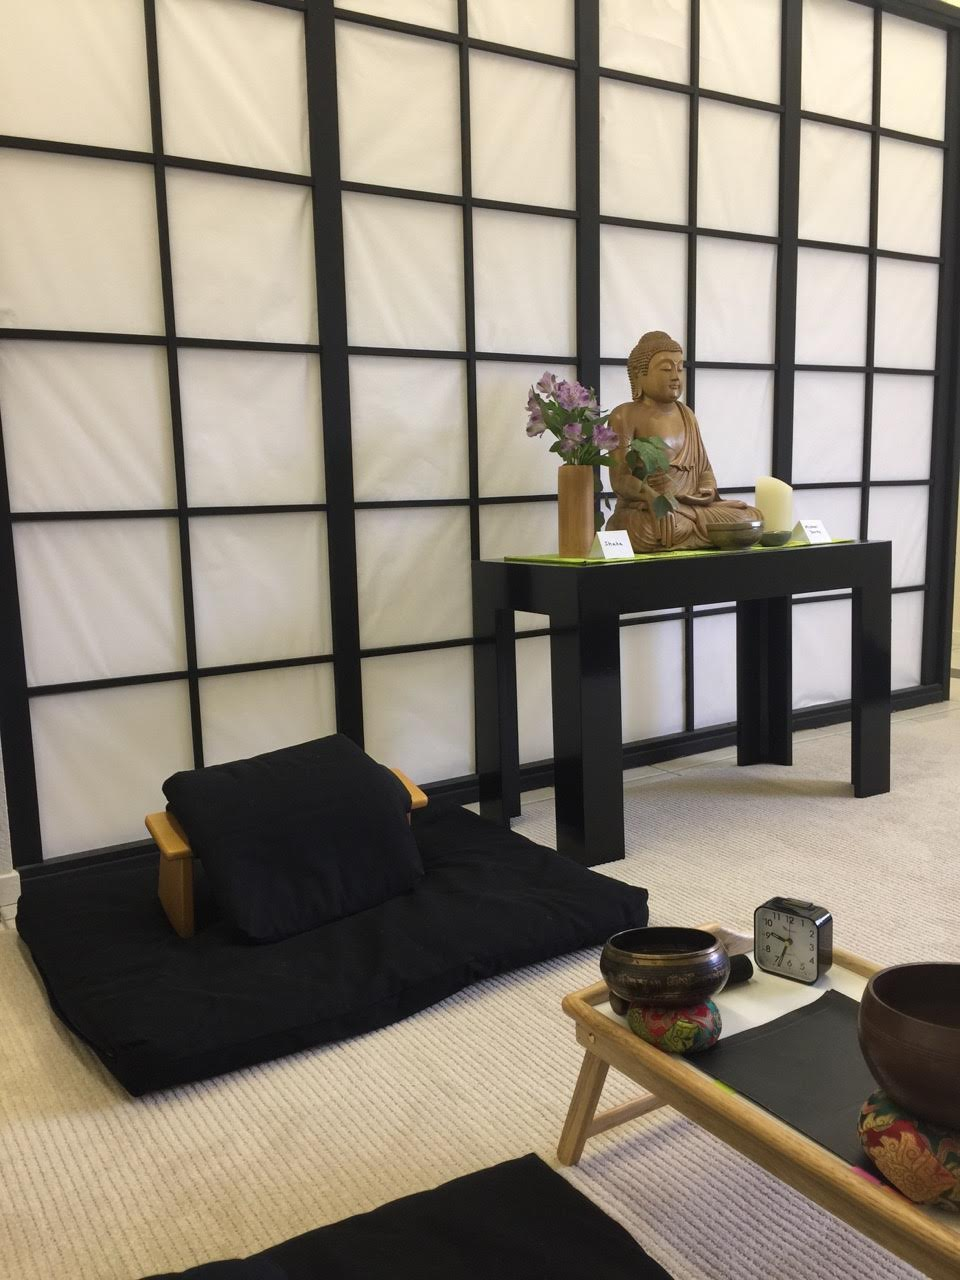 Zen area with Buddha statue